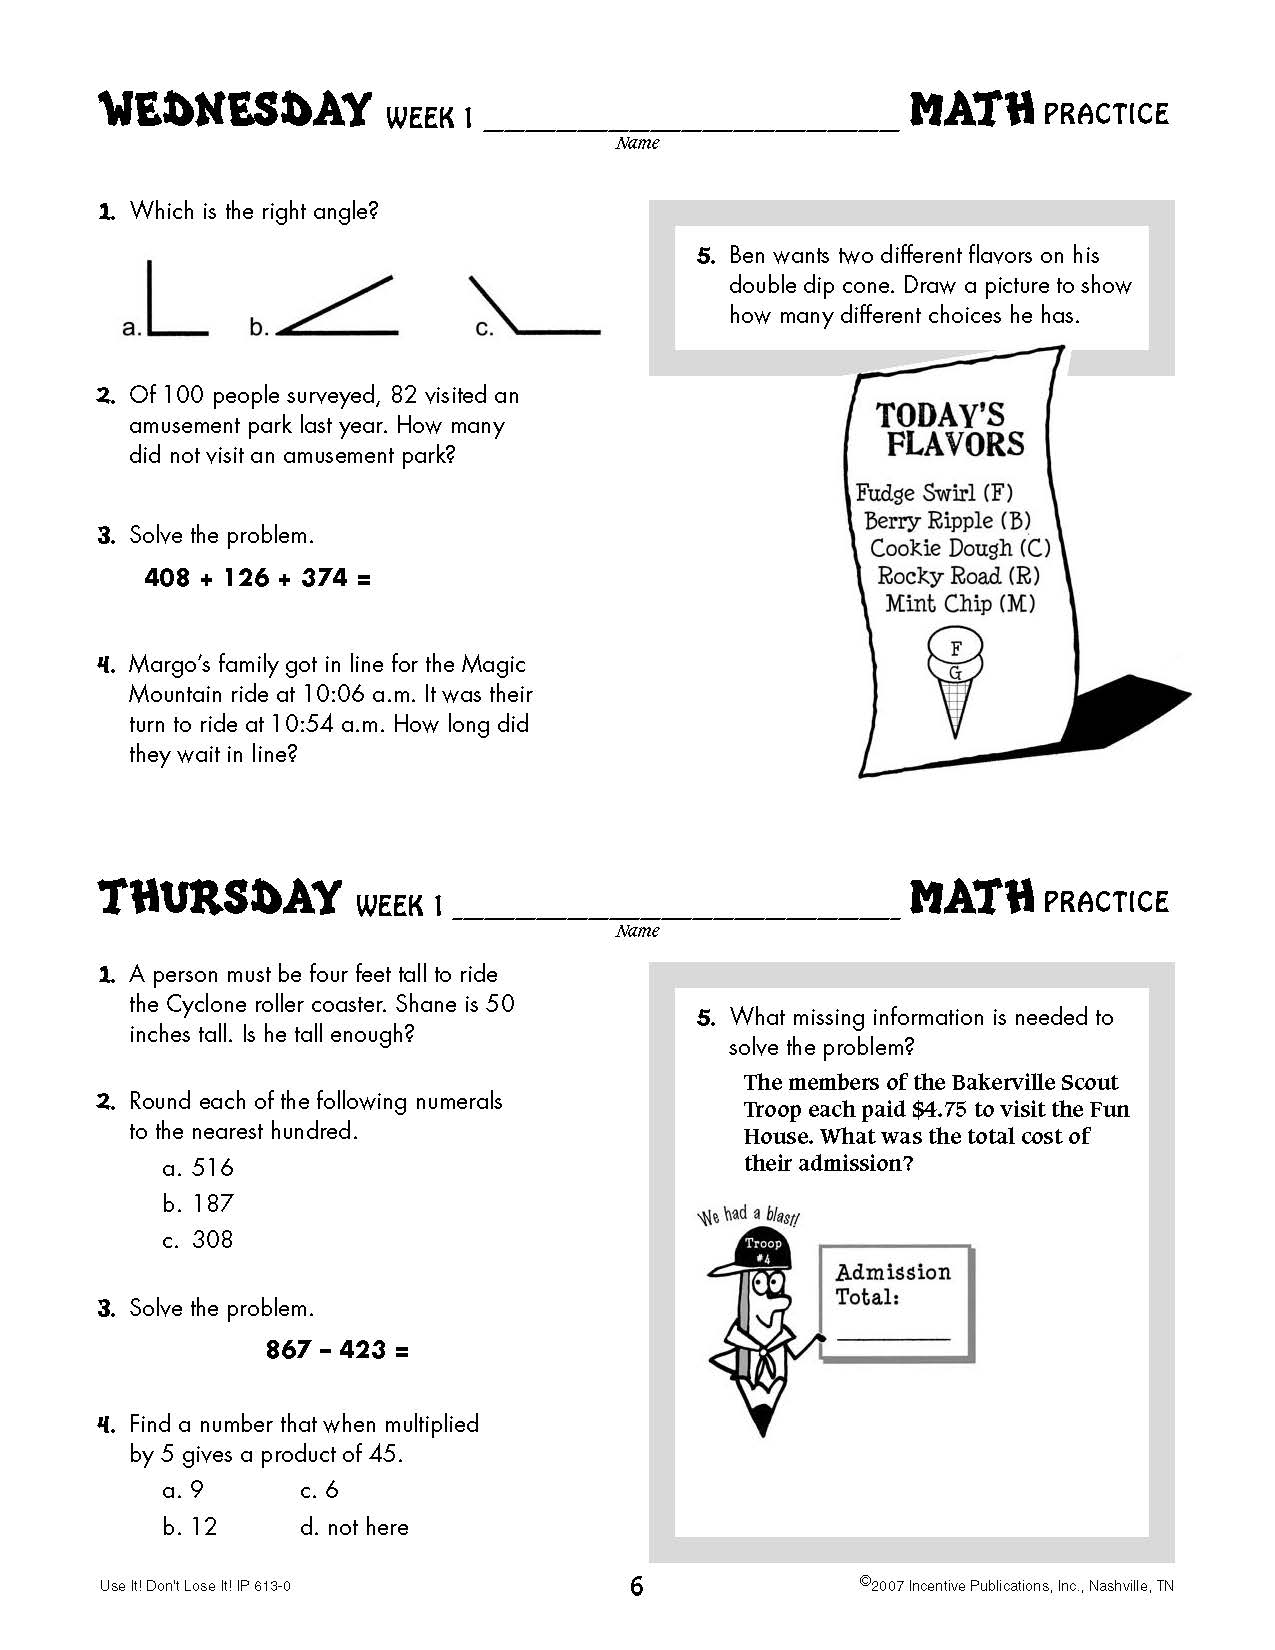 Worksheet 5th Grade Math Practice daily math practice 5th grade use it dont lose world book it